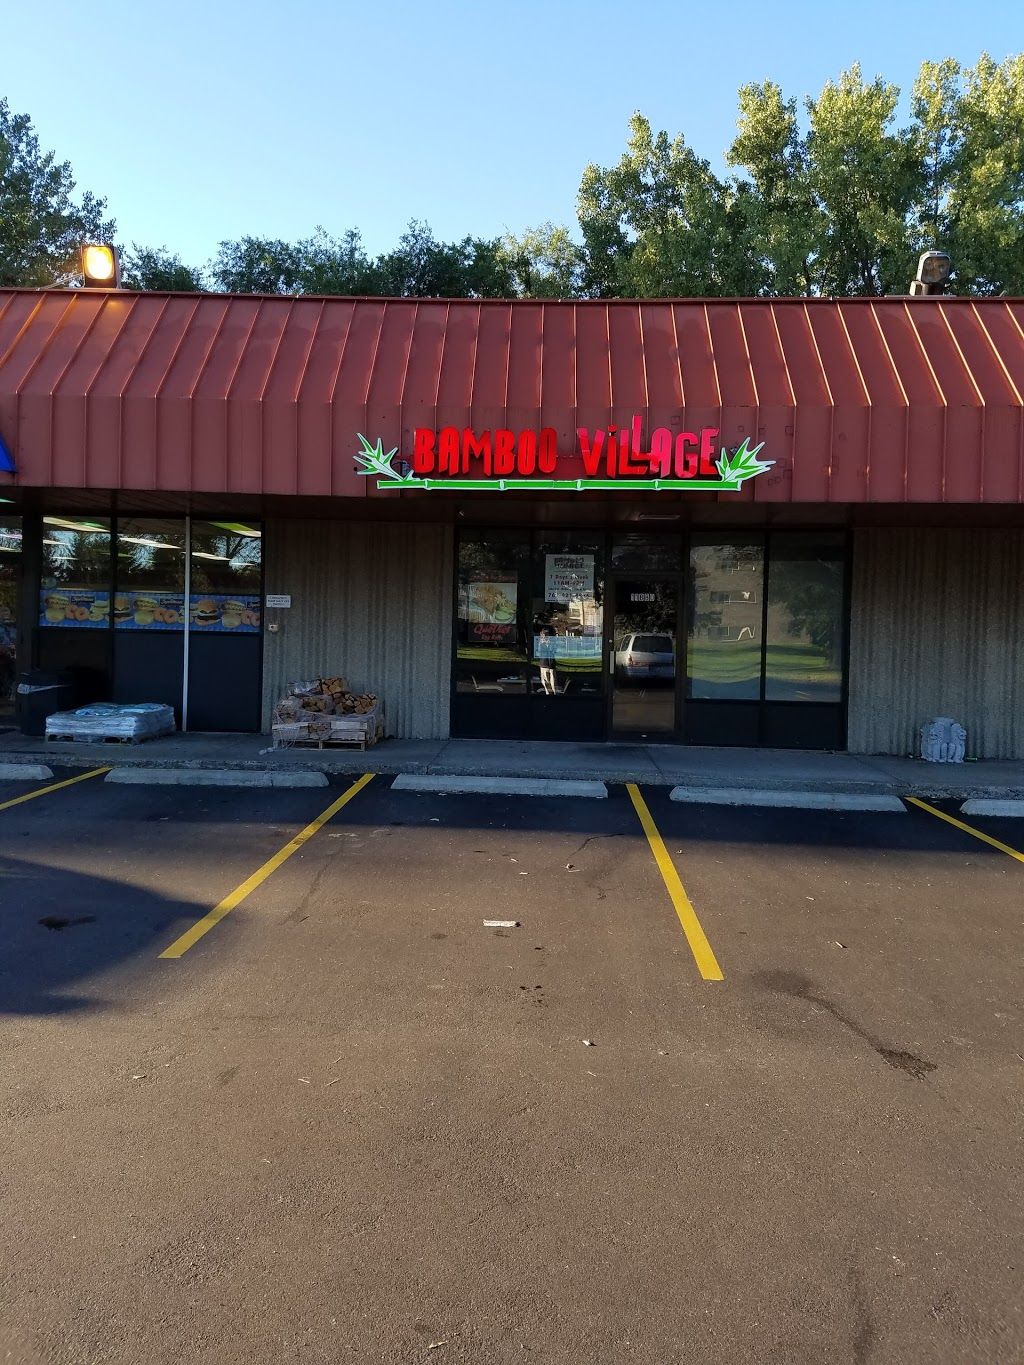 Bamboo Village Restaurant - meal delivery  | Photo 8 of 10 | Address: 11880 Round Lake Blvd NW, Coon Rapids, MN 55433, USA | Phone: (763) 421-7772